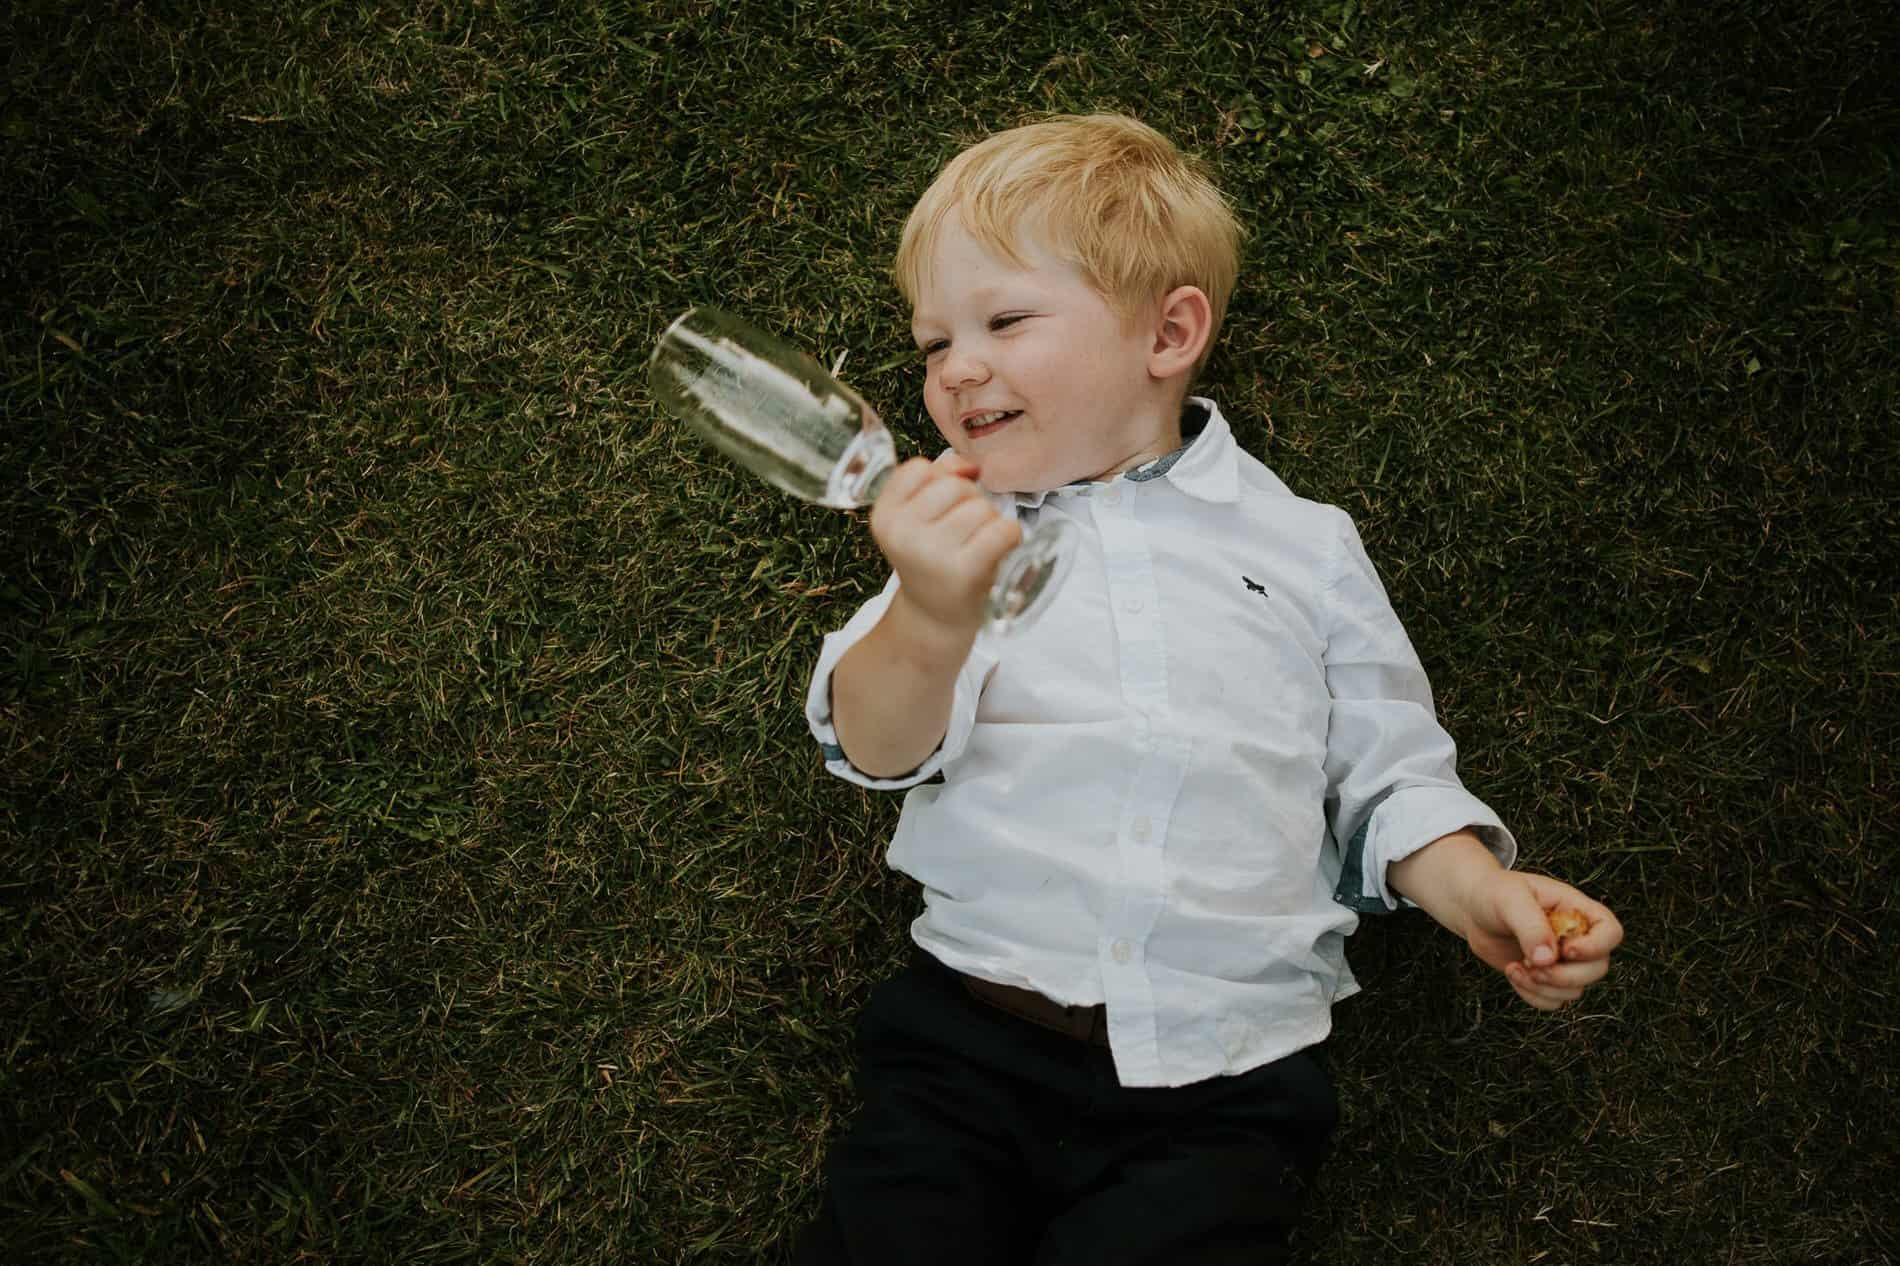 Child laying down holding a wine glass at a wedding reception